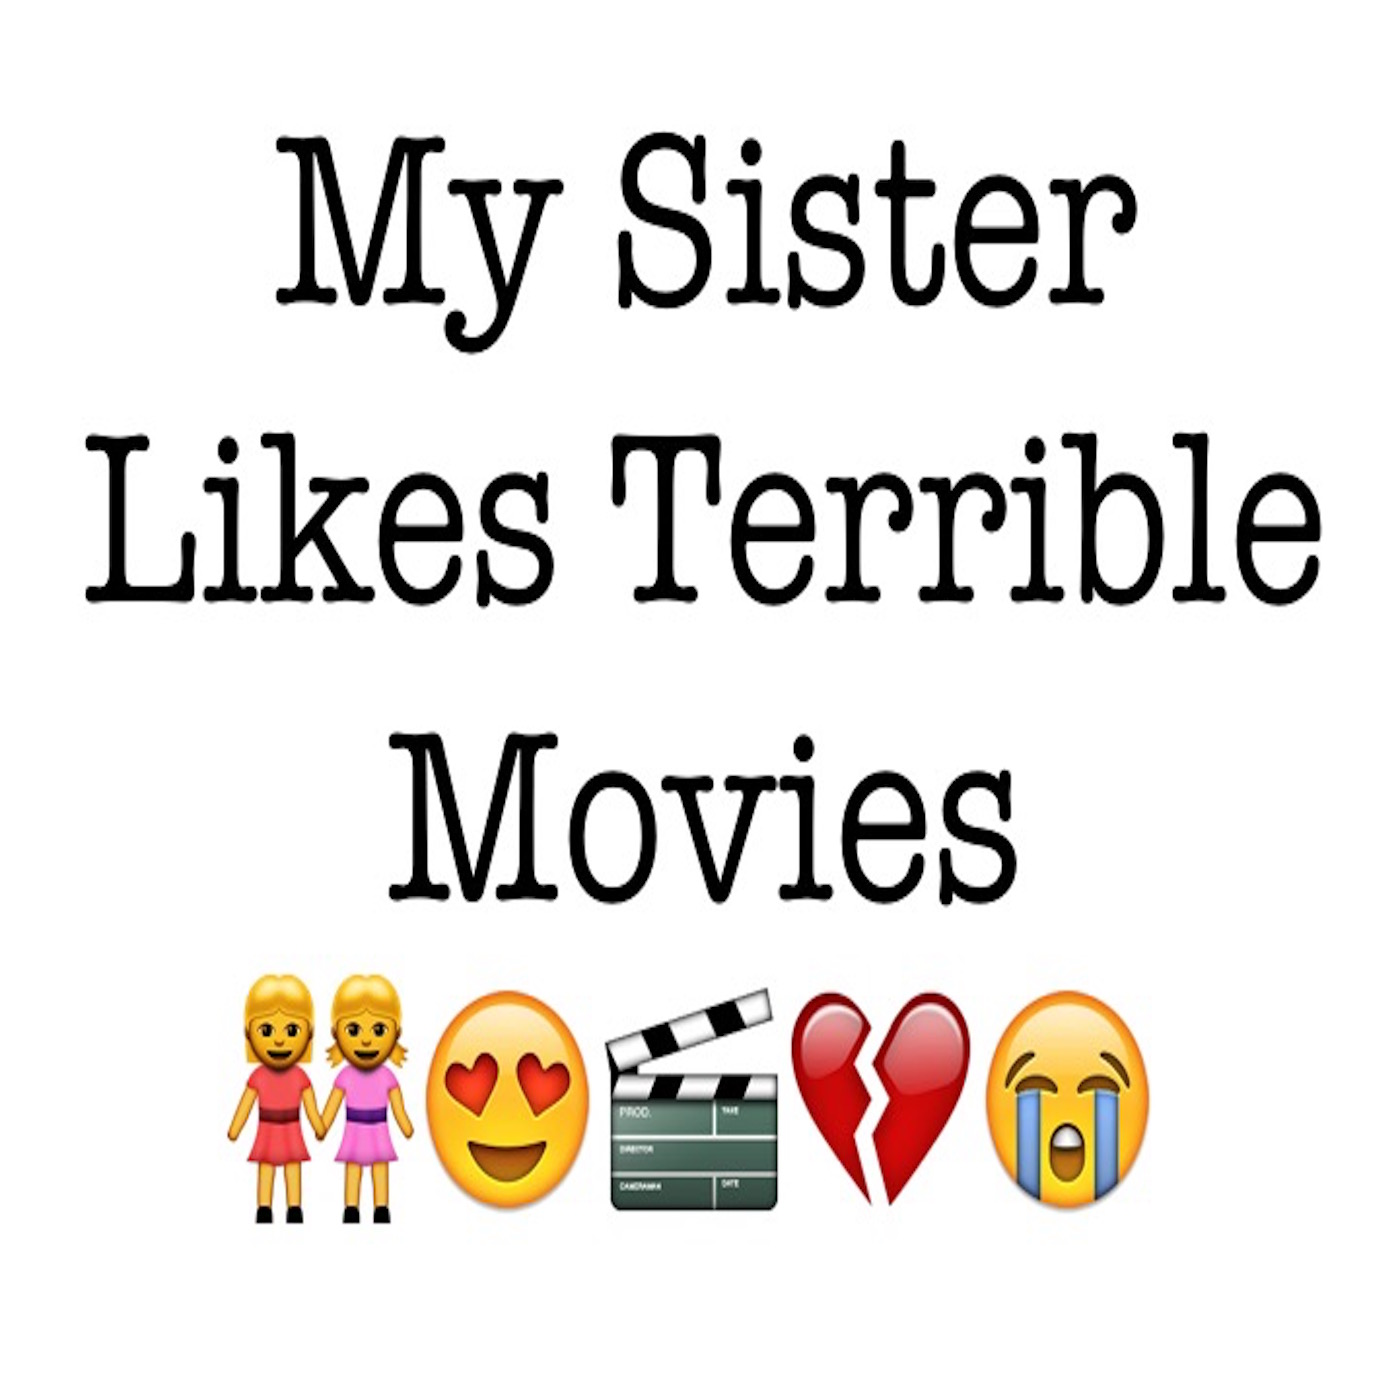 My Sister Likes Terrible Movies!